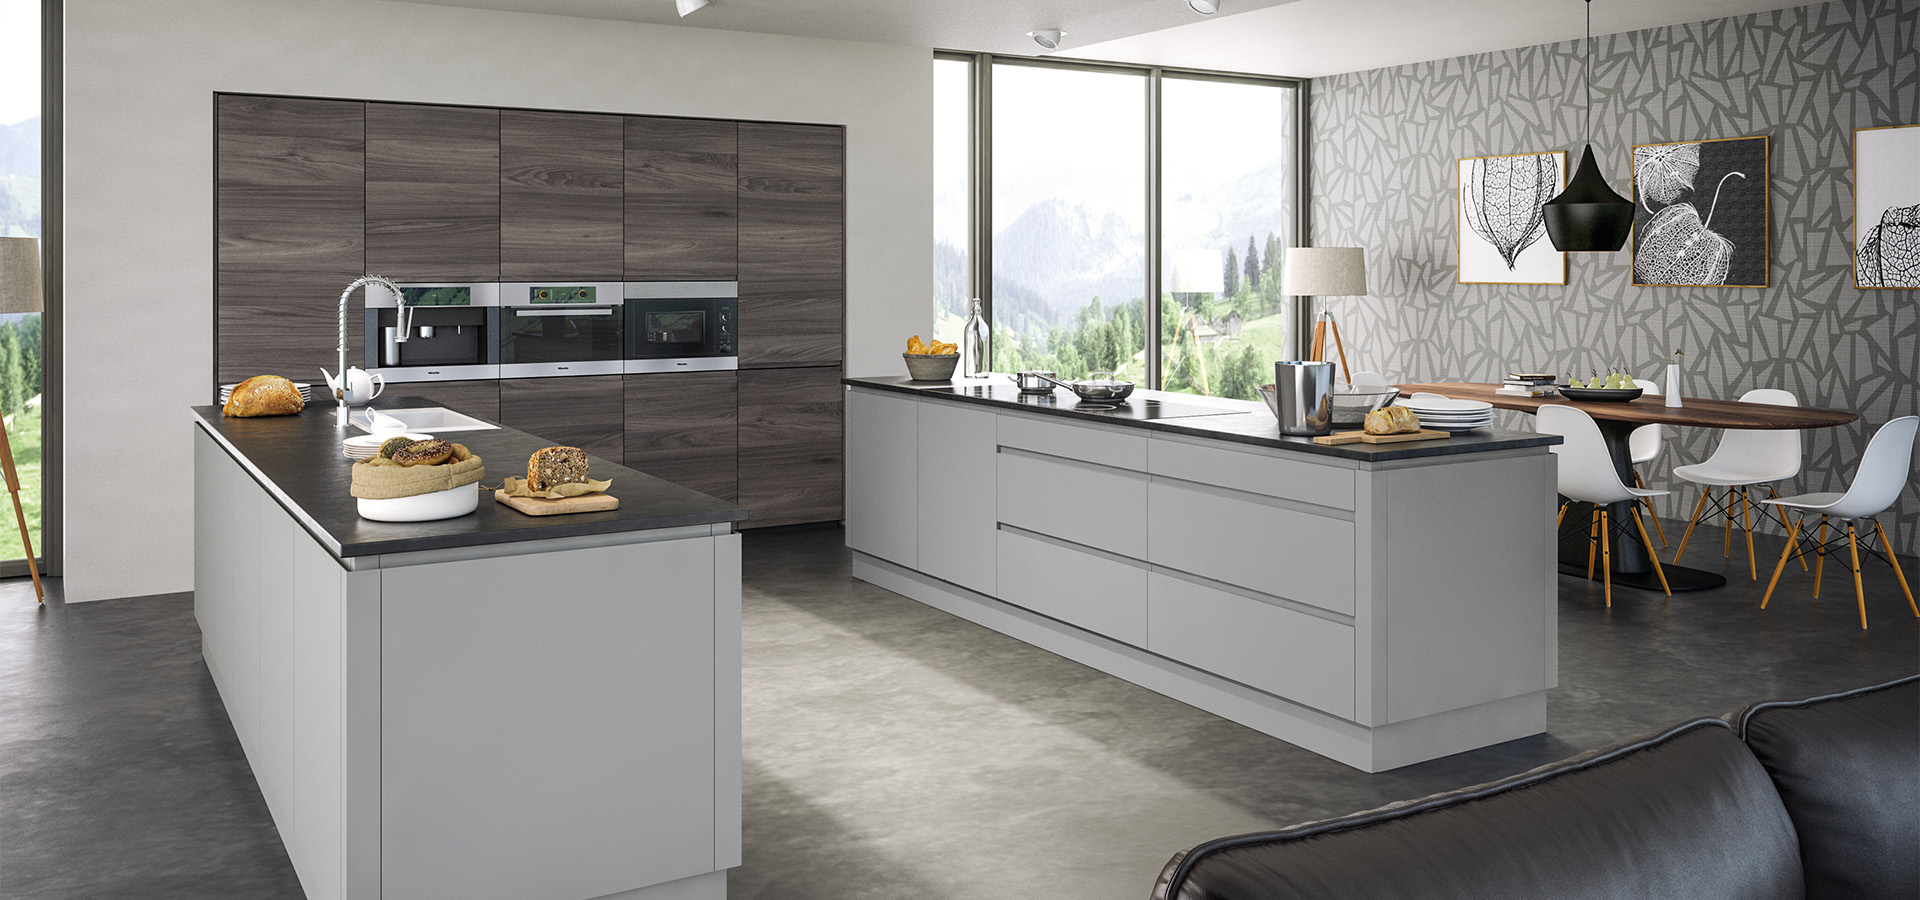 Mybest Kitchens Fitted Kitchens Appliances Croydon